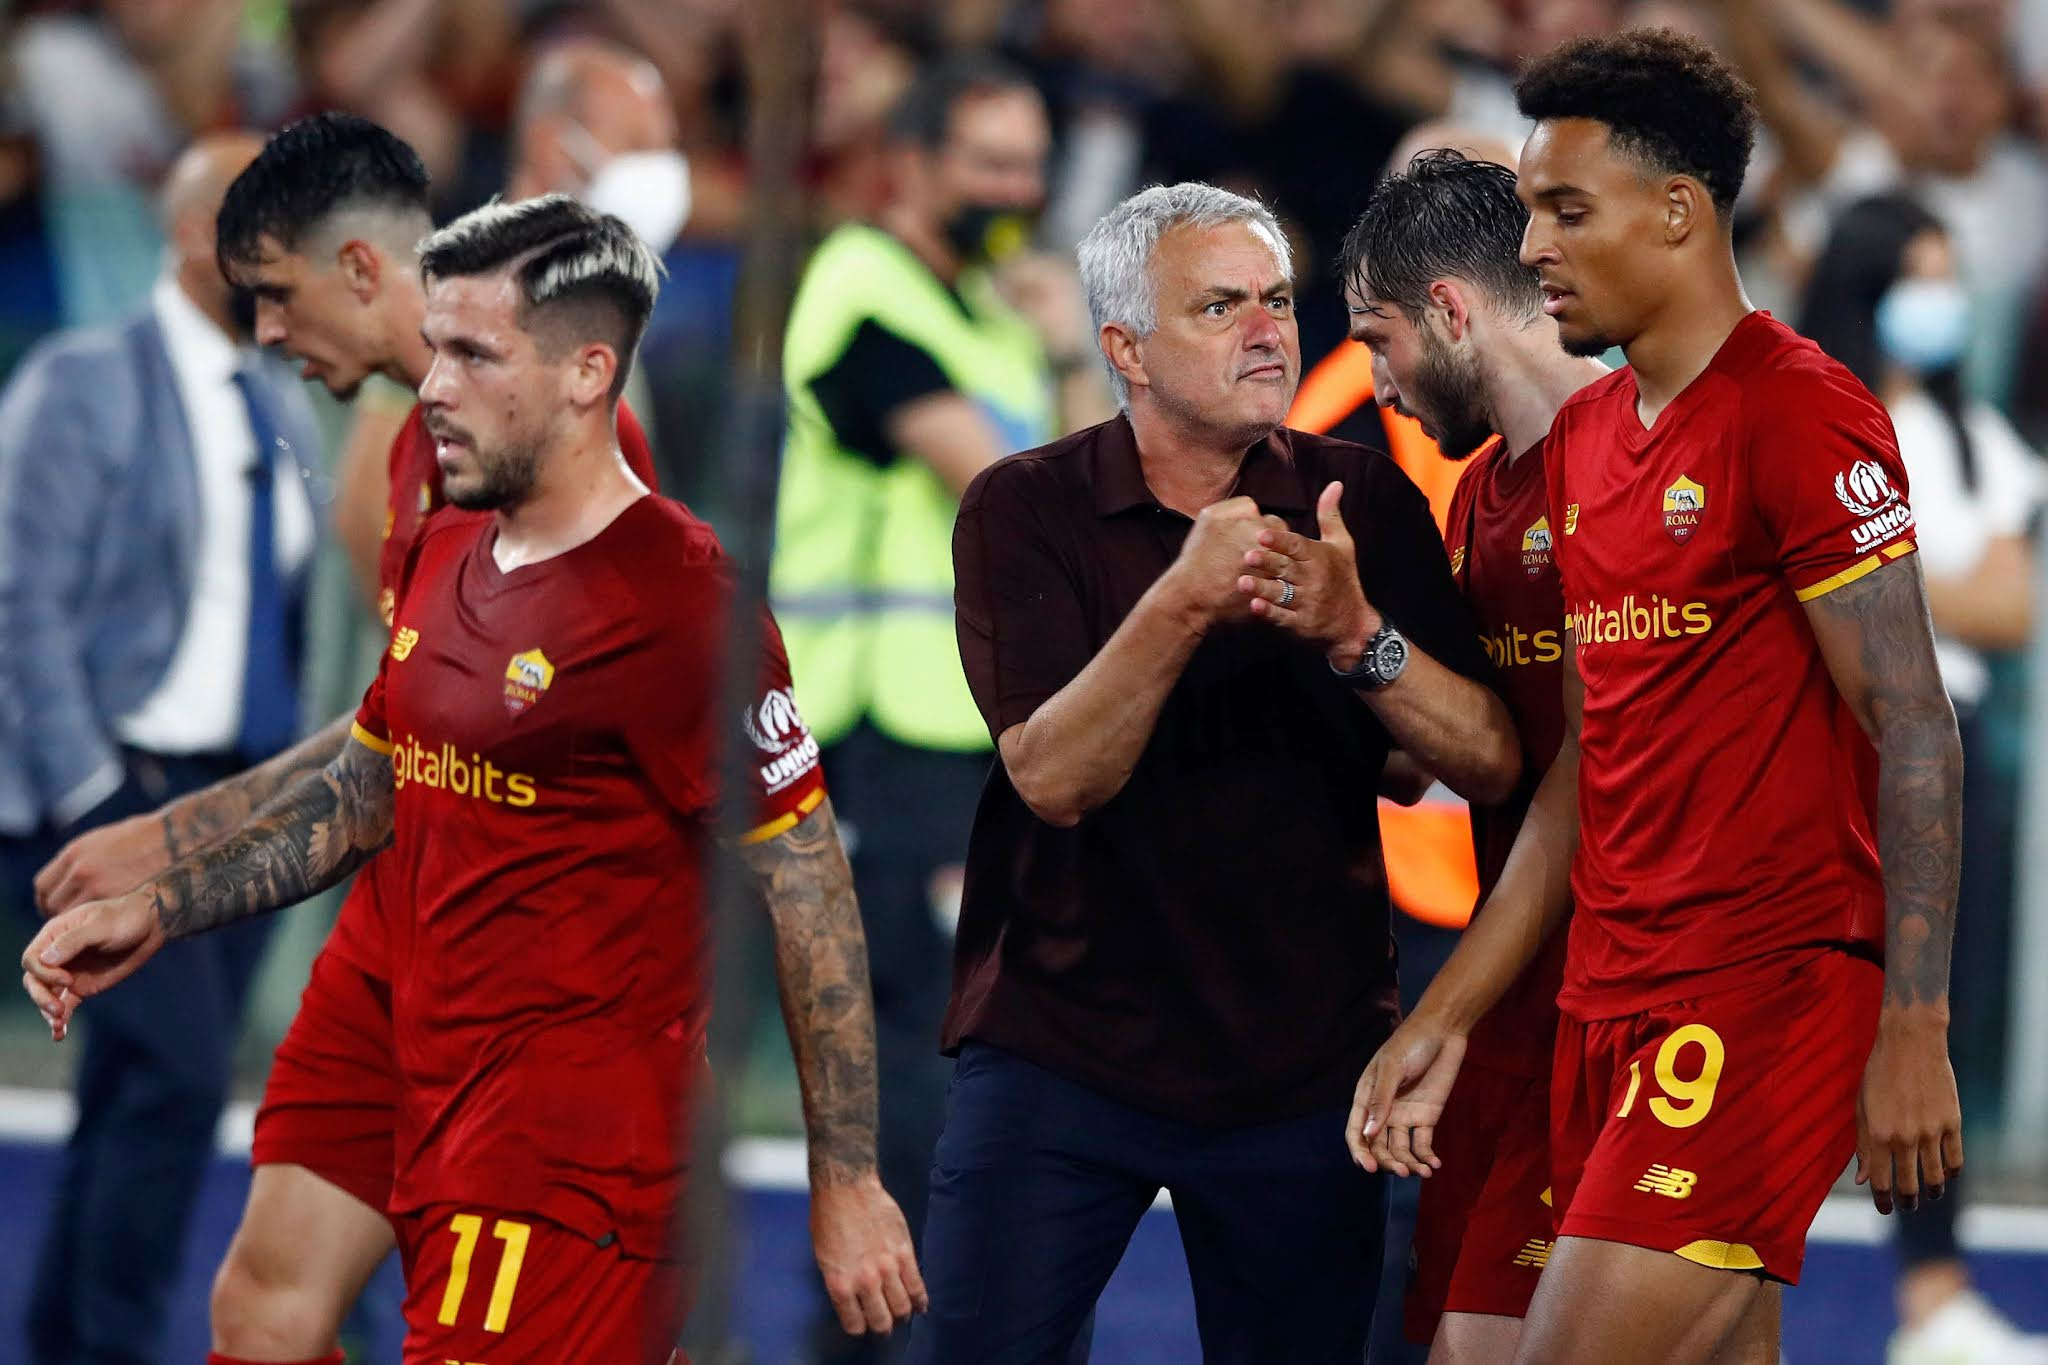 Jose Mourinho's Roma celebrating victory in his 1000th game